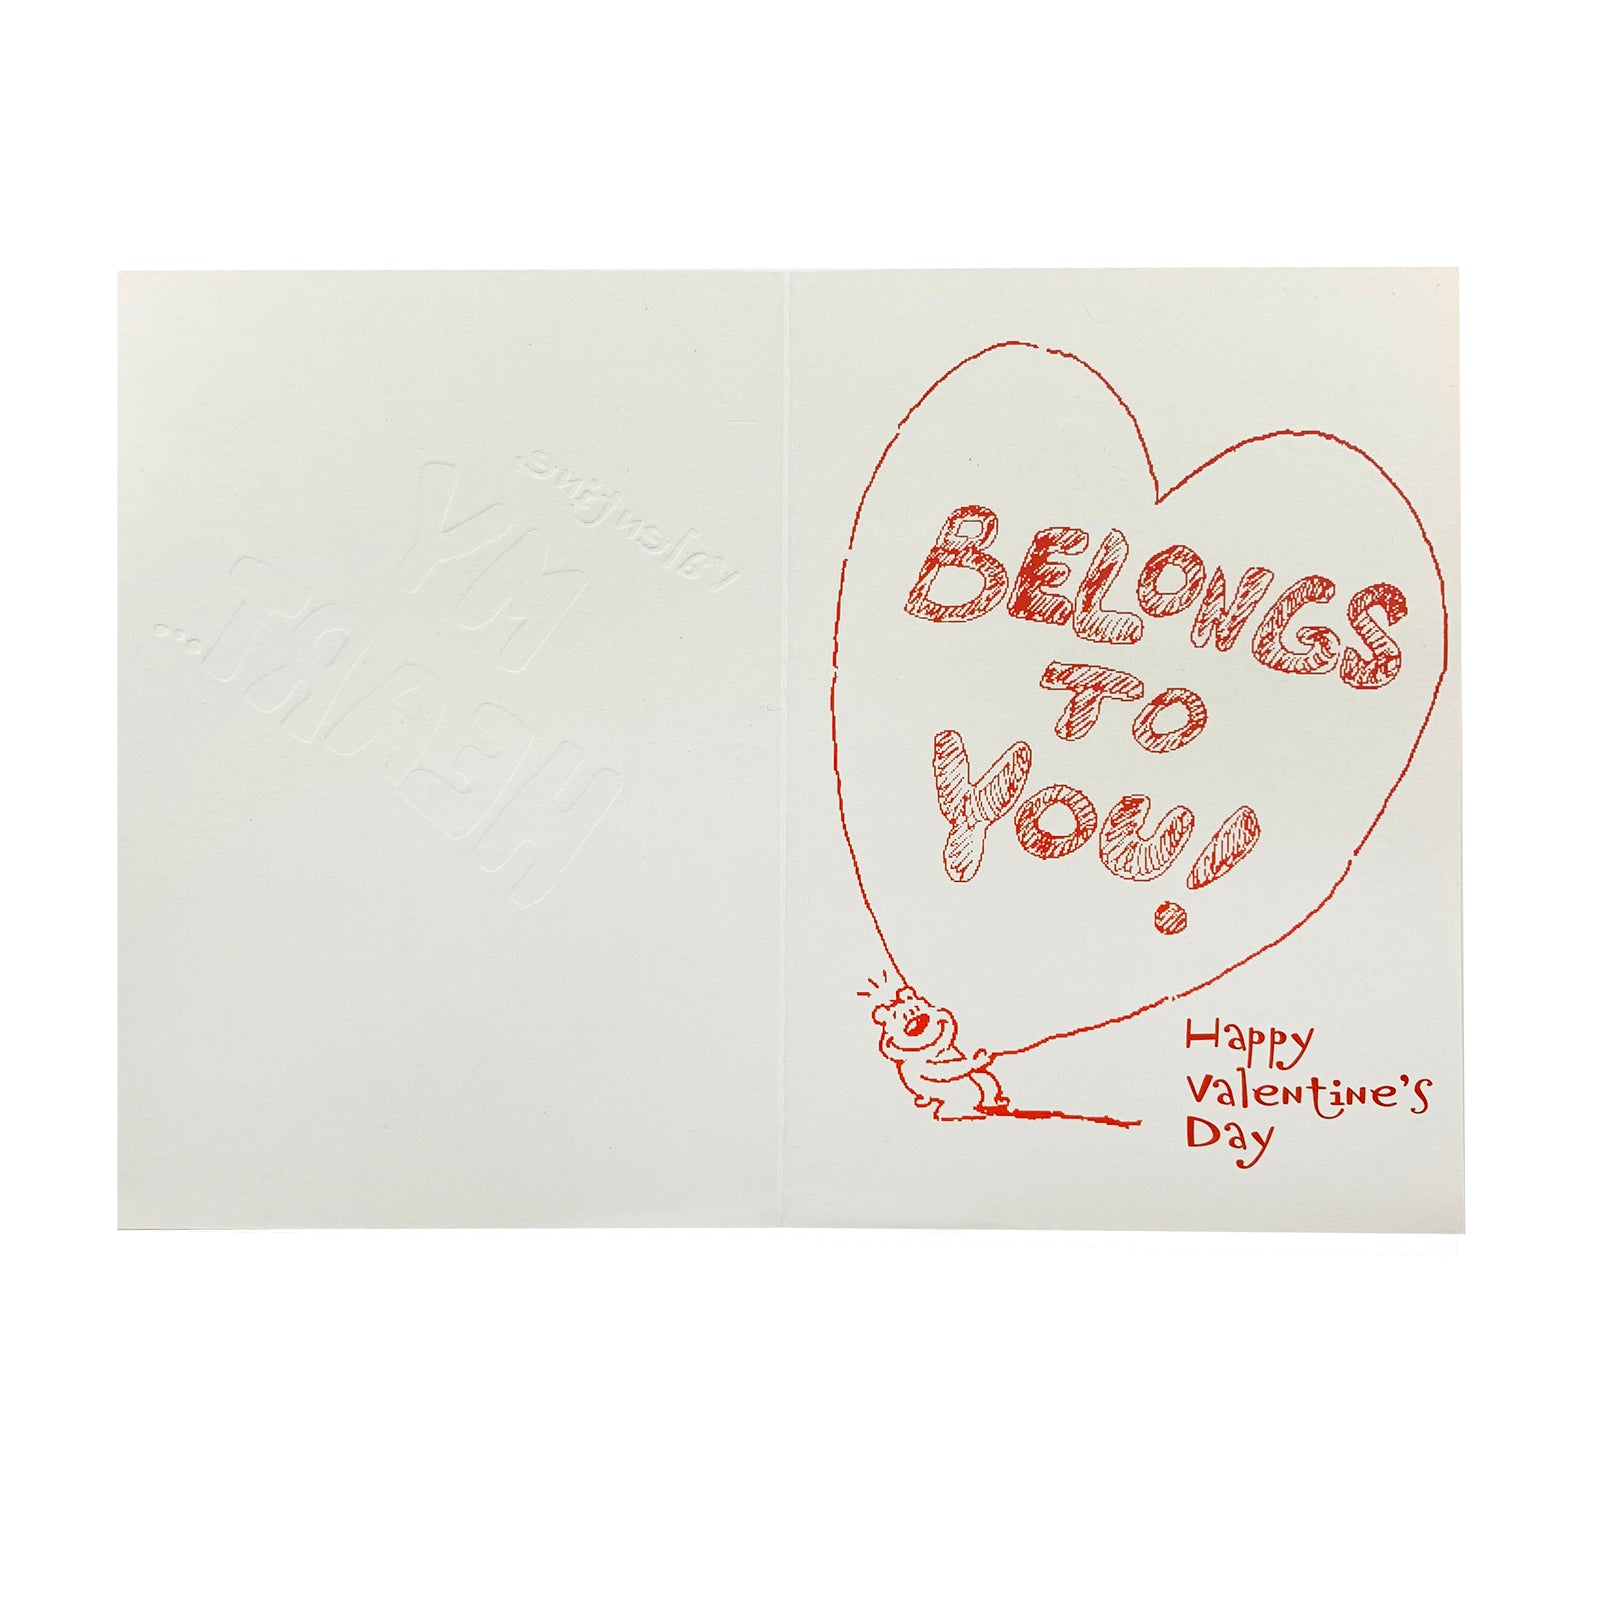 Designer Greetings Valentine's Day Card - My Heart